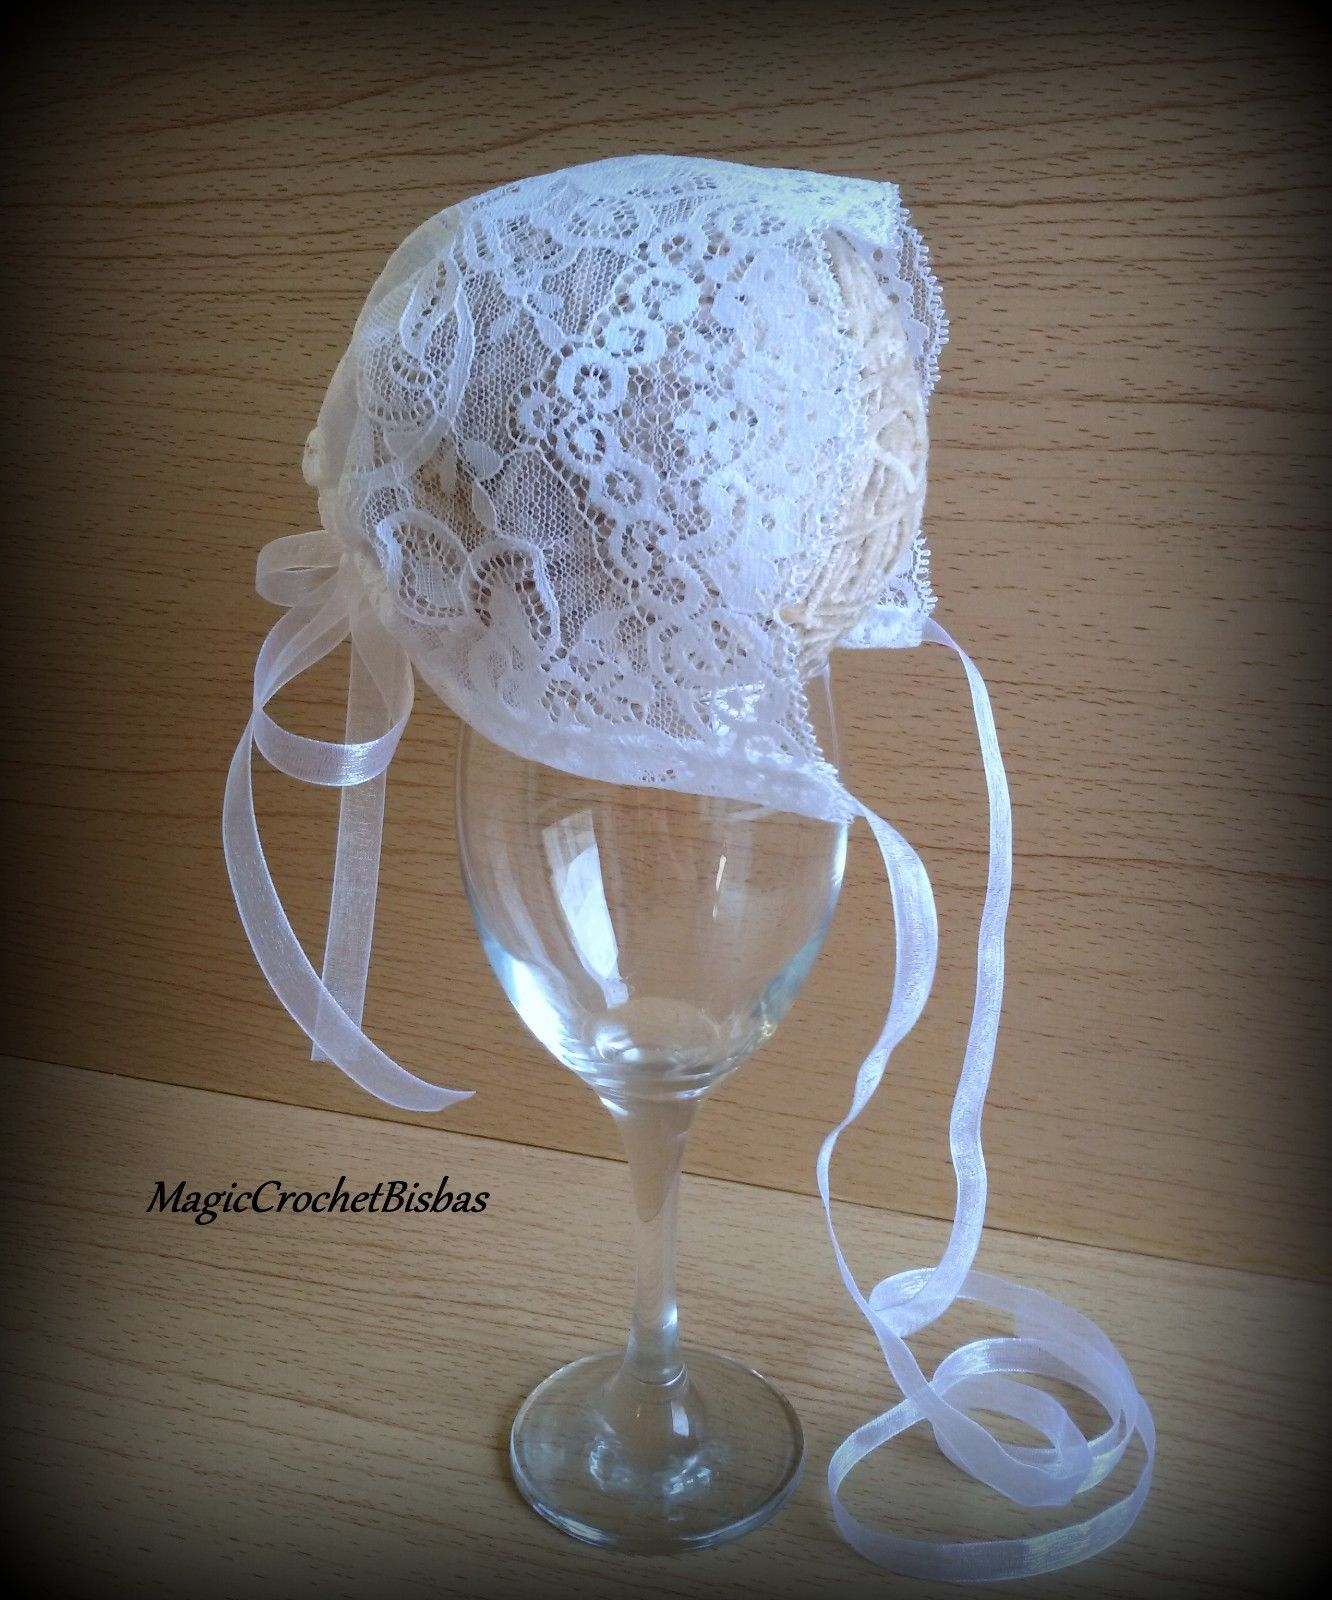 christening bonnet LACE Handmade Baby Bonnet Photo Prop baptism bonnet